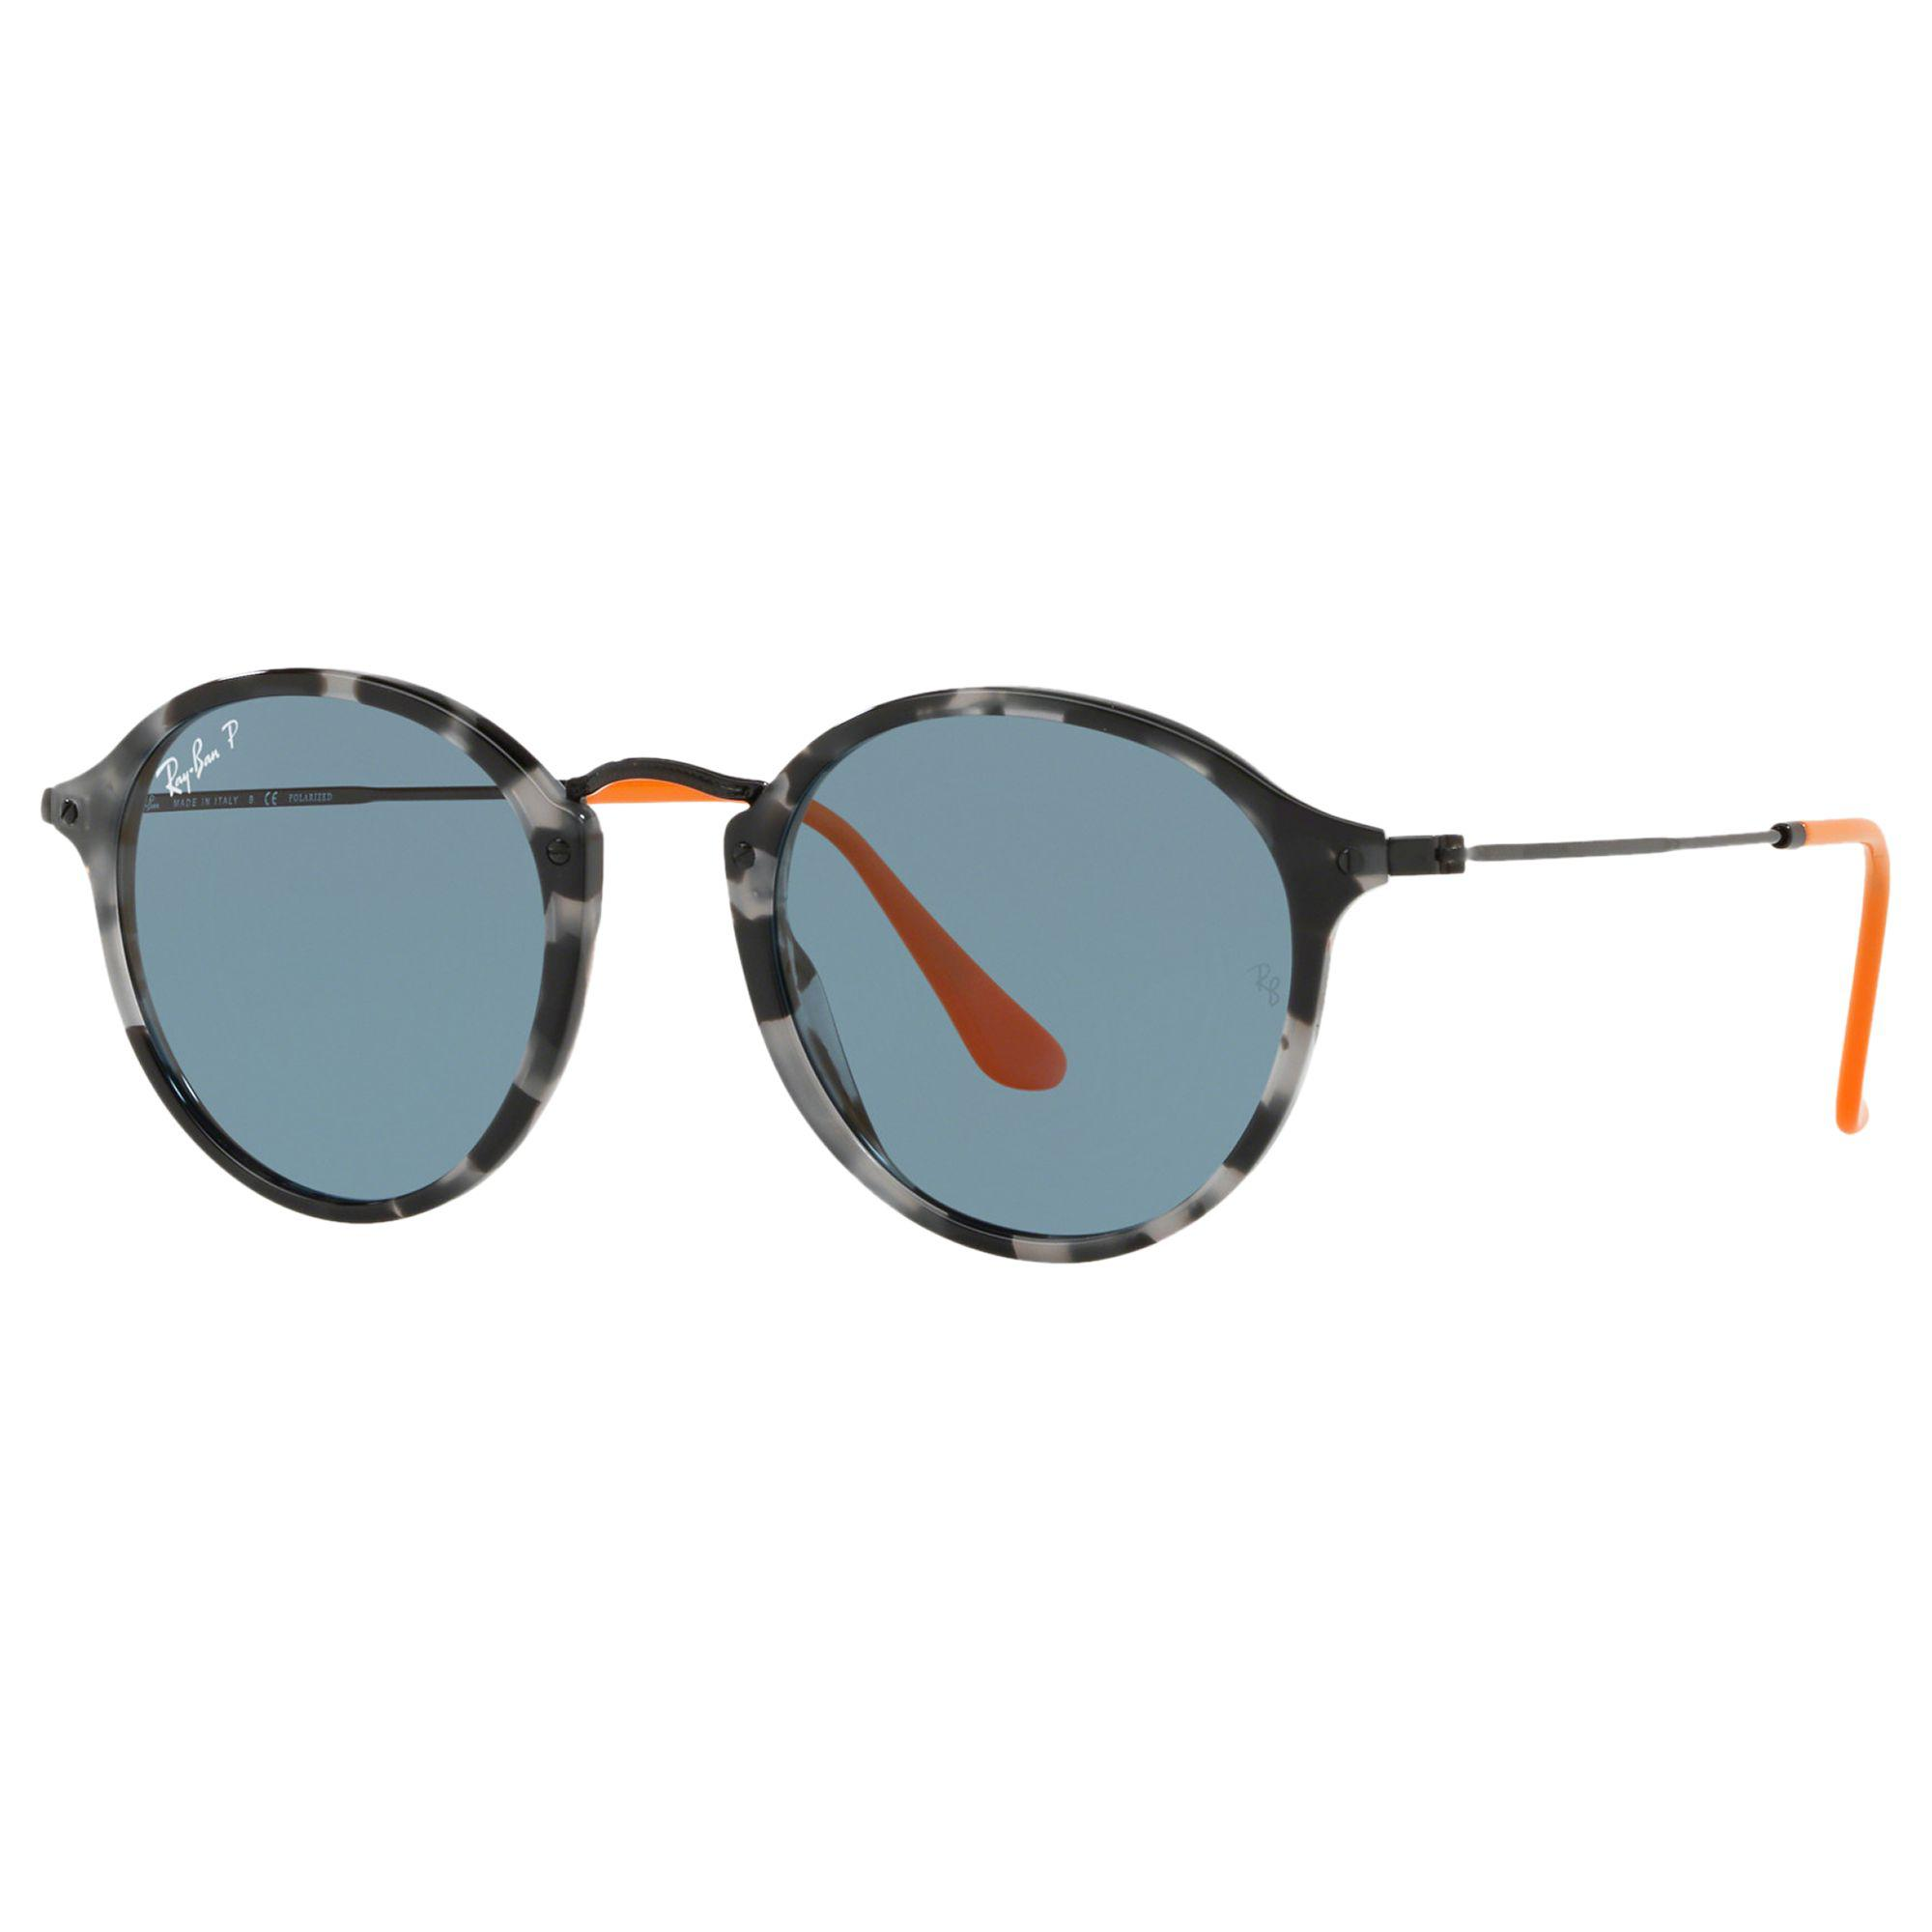 5c50fe2a49 For Round Sunglasses Lyst Ray Men Rb2447 Men s Ban BwnqUUxvZT